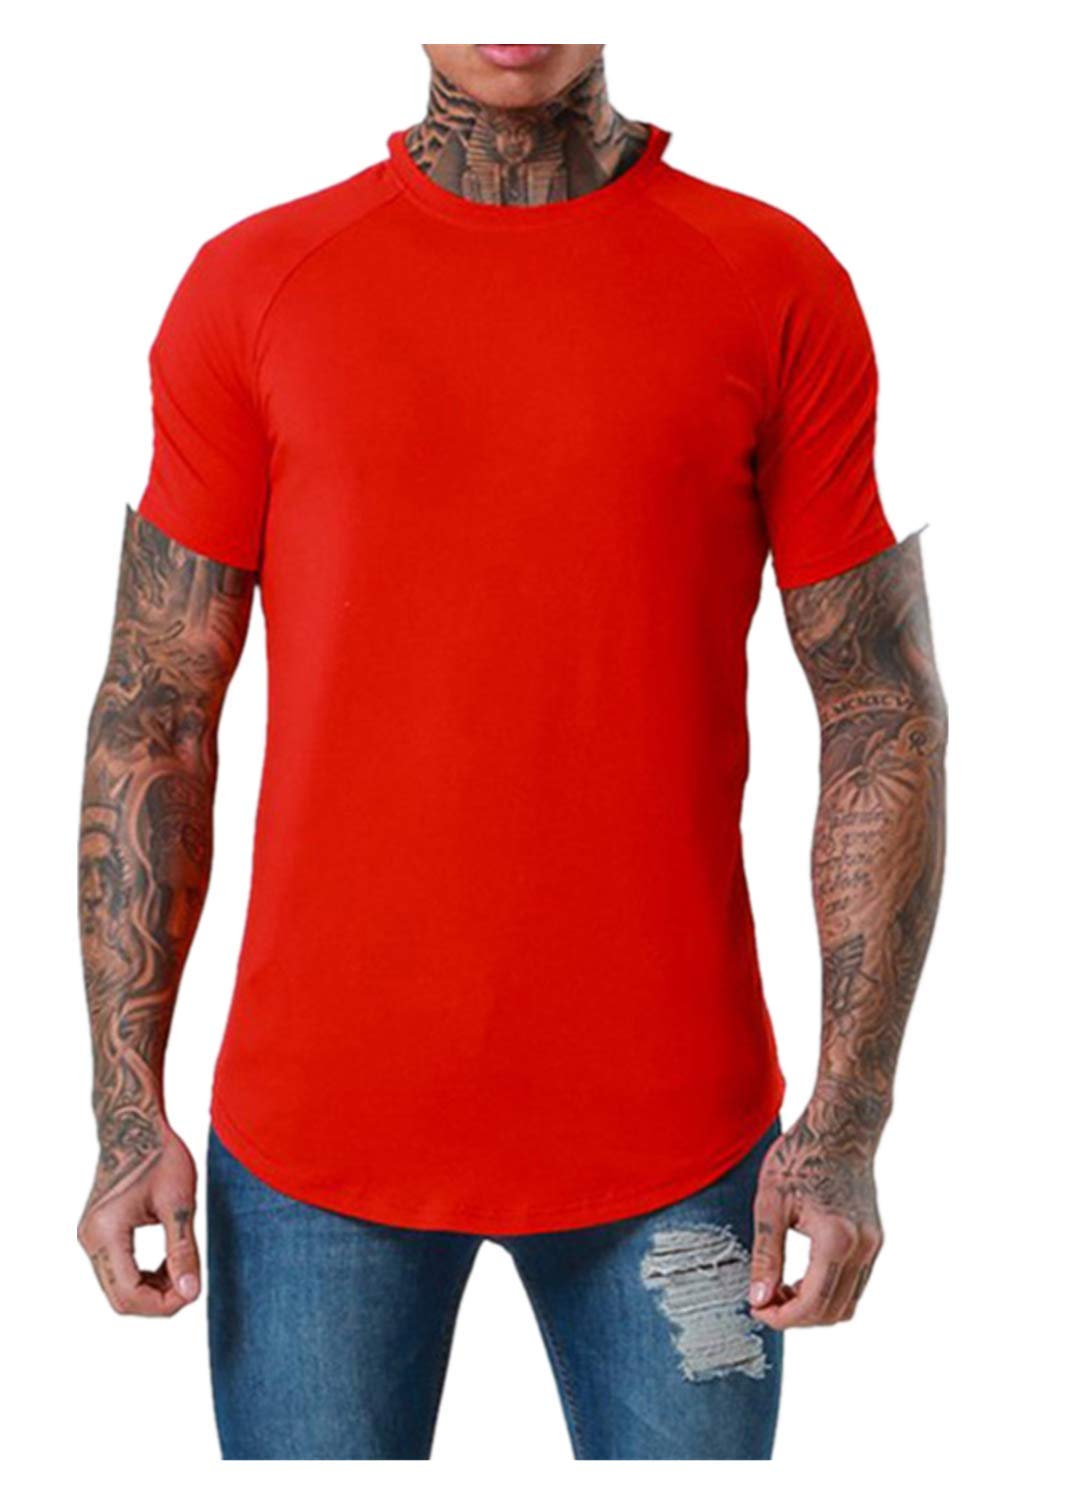 Men's Fashion T Shirts Stitching Two Color Slip Shoulder Round O-Neck Casual Top Blouses (M, Red)